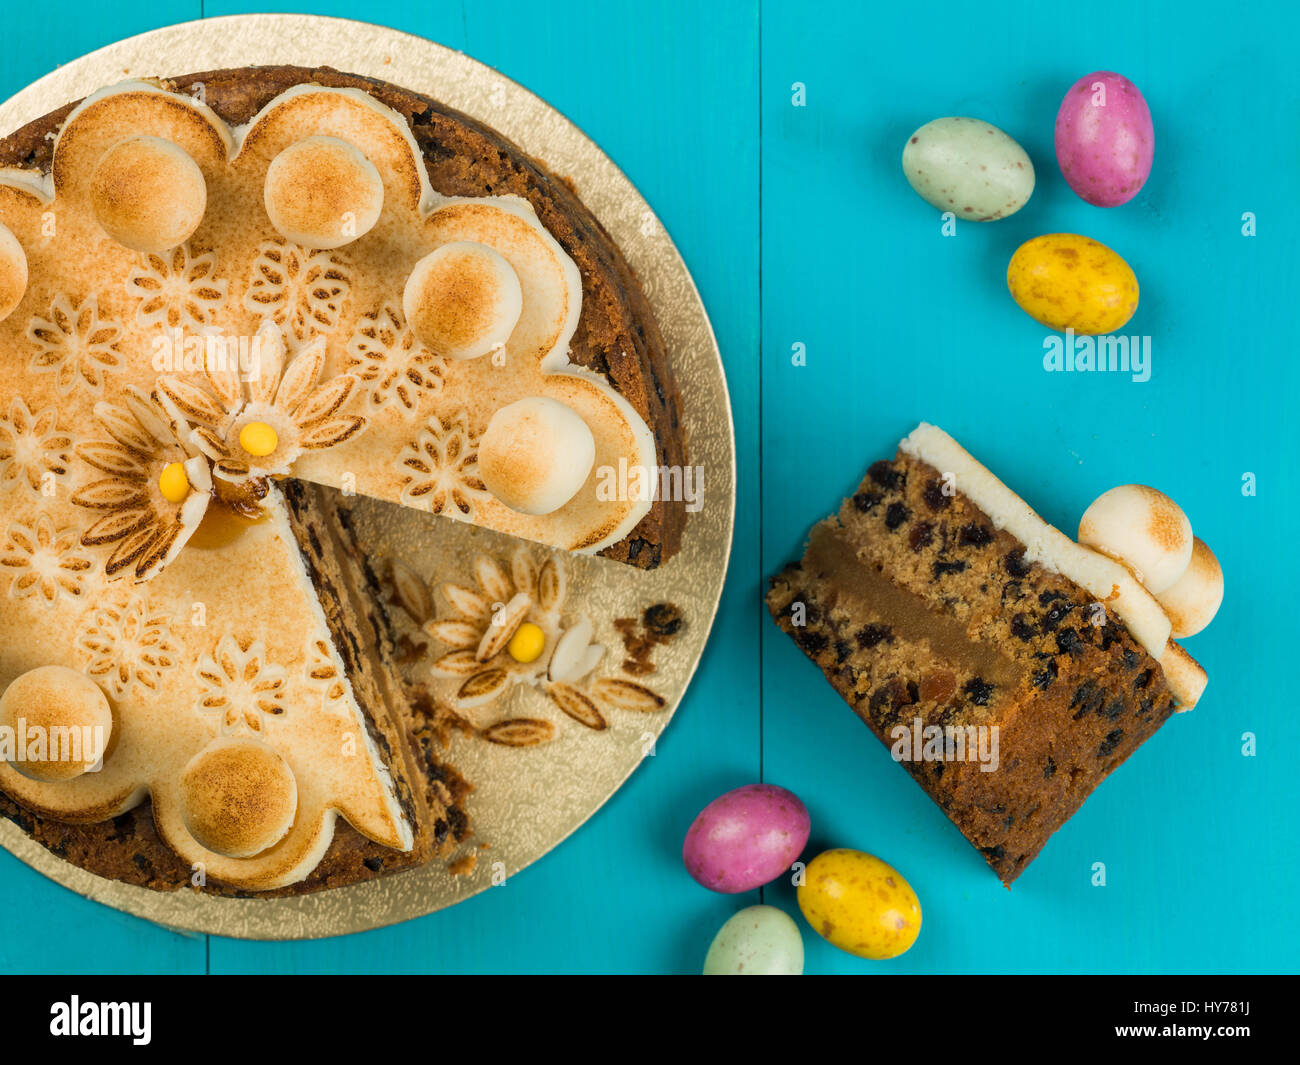 Easter Simnel Cake With Marzipan Icing and Decorations Against a Blue Background - Stock Image